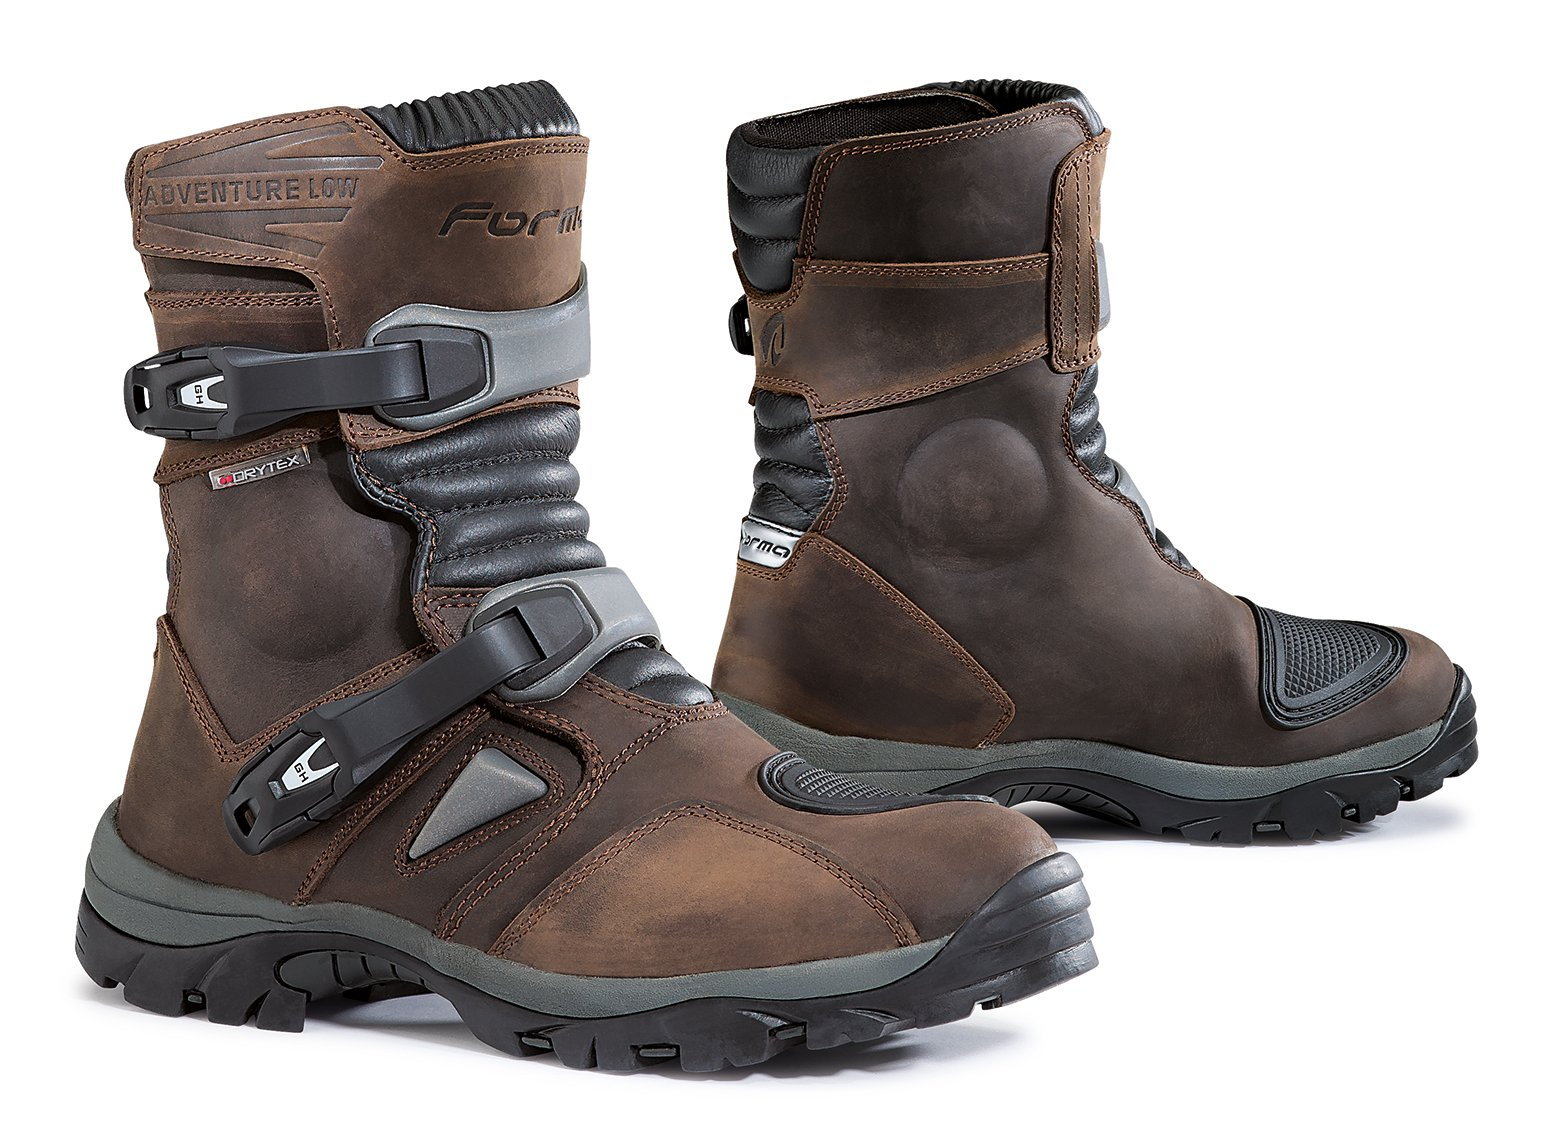 Forma  Adventure Low Boots (Brown,Size 11 US/Size 45 Euro)